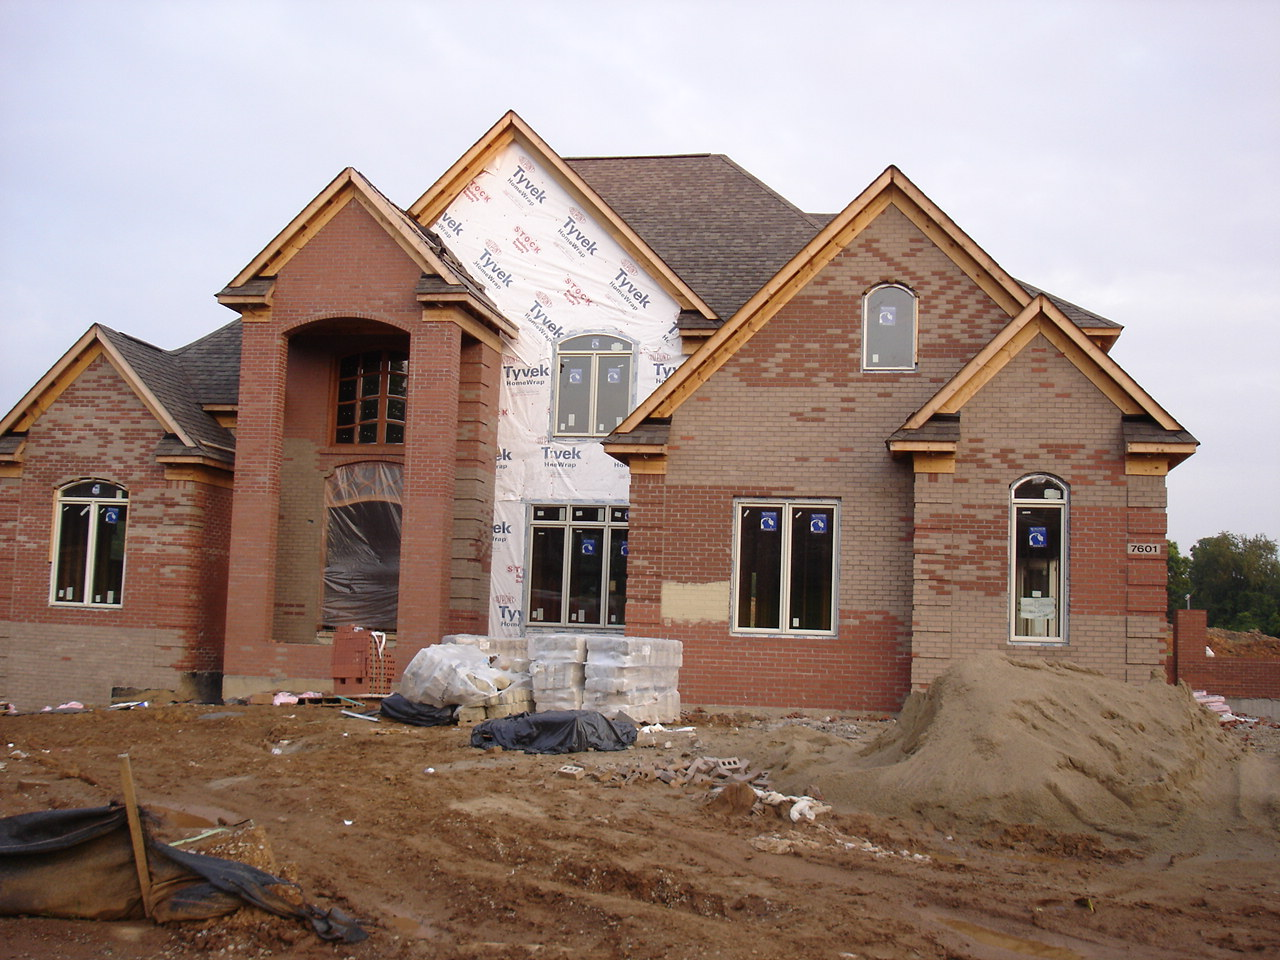 https://upload.wikimedia.org/wikipedia/commons/2/2c/Mcmansion_under_construction.jpg